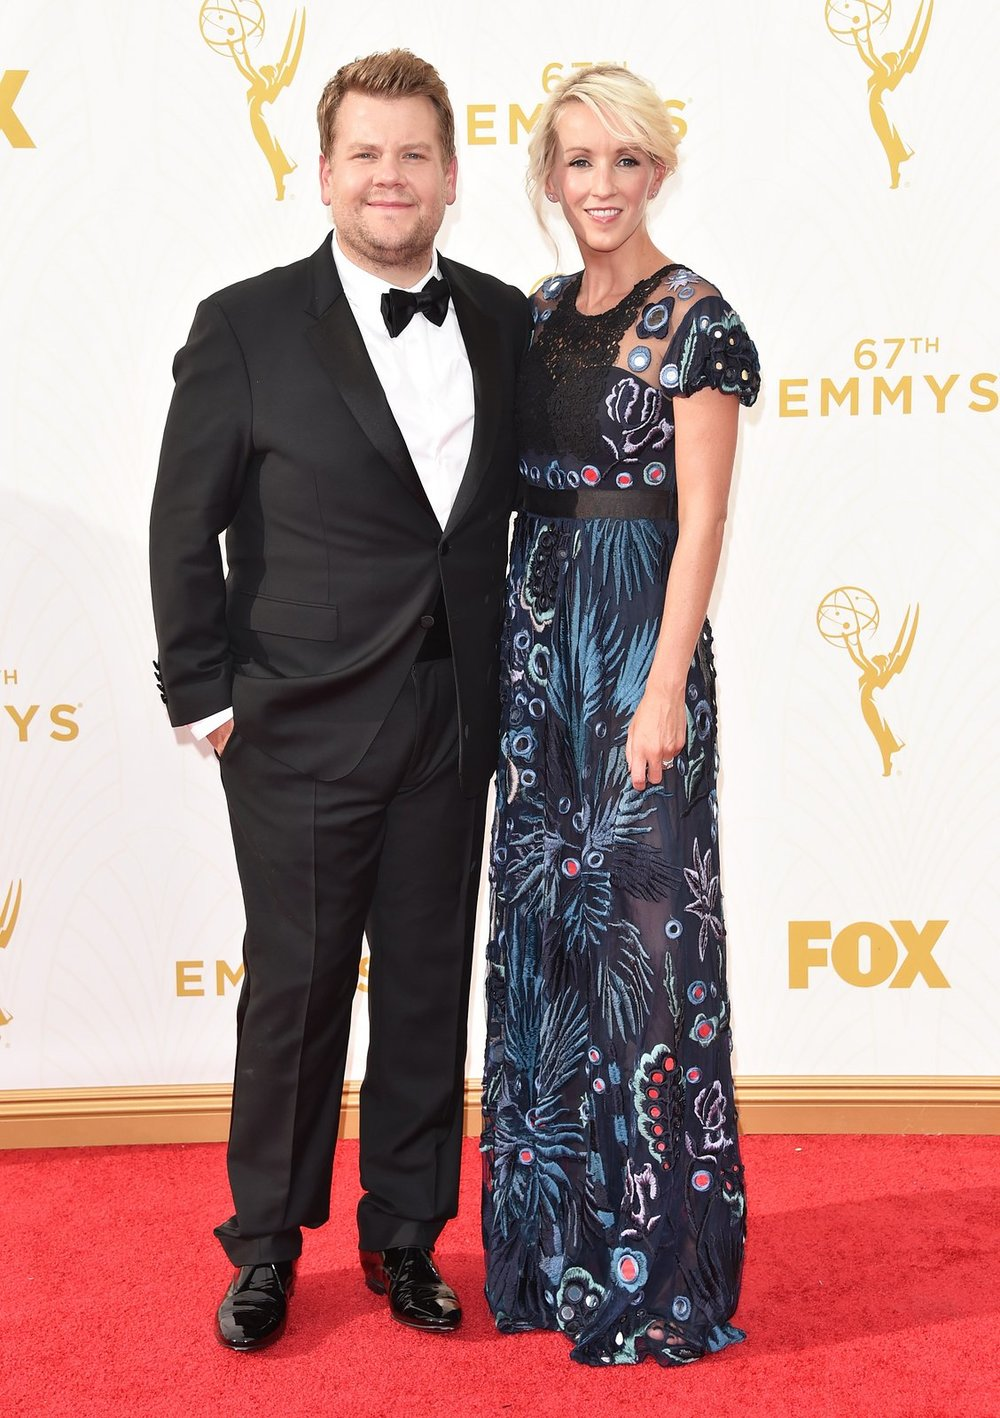 julia-carey-emmys-red-carpet-2015.jpg